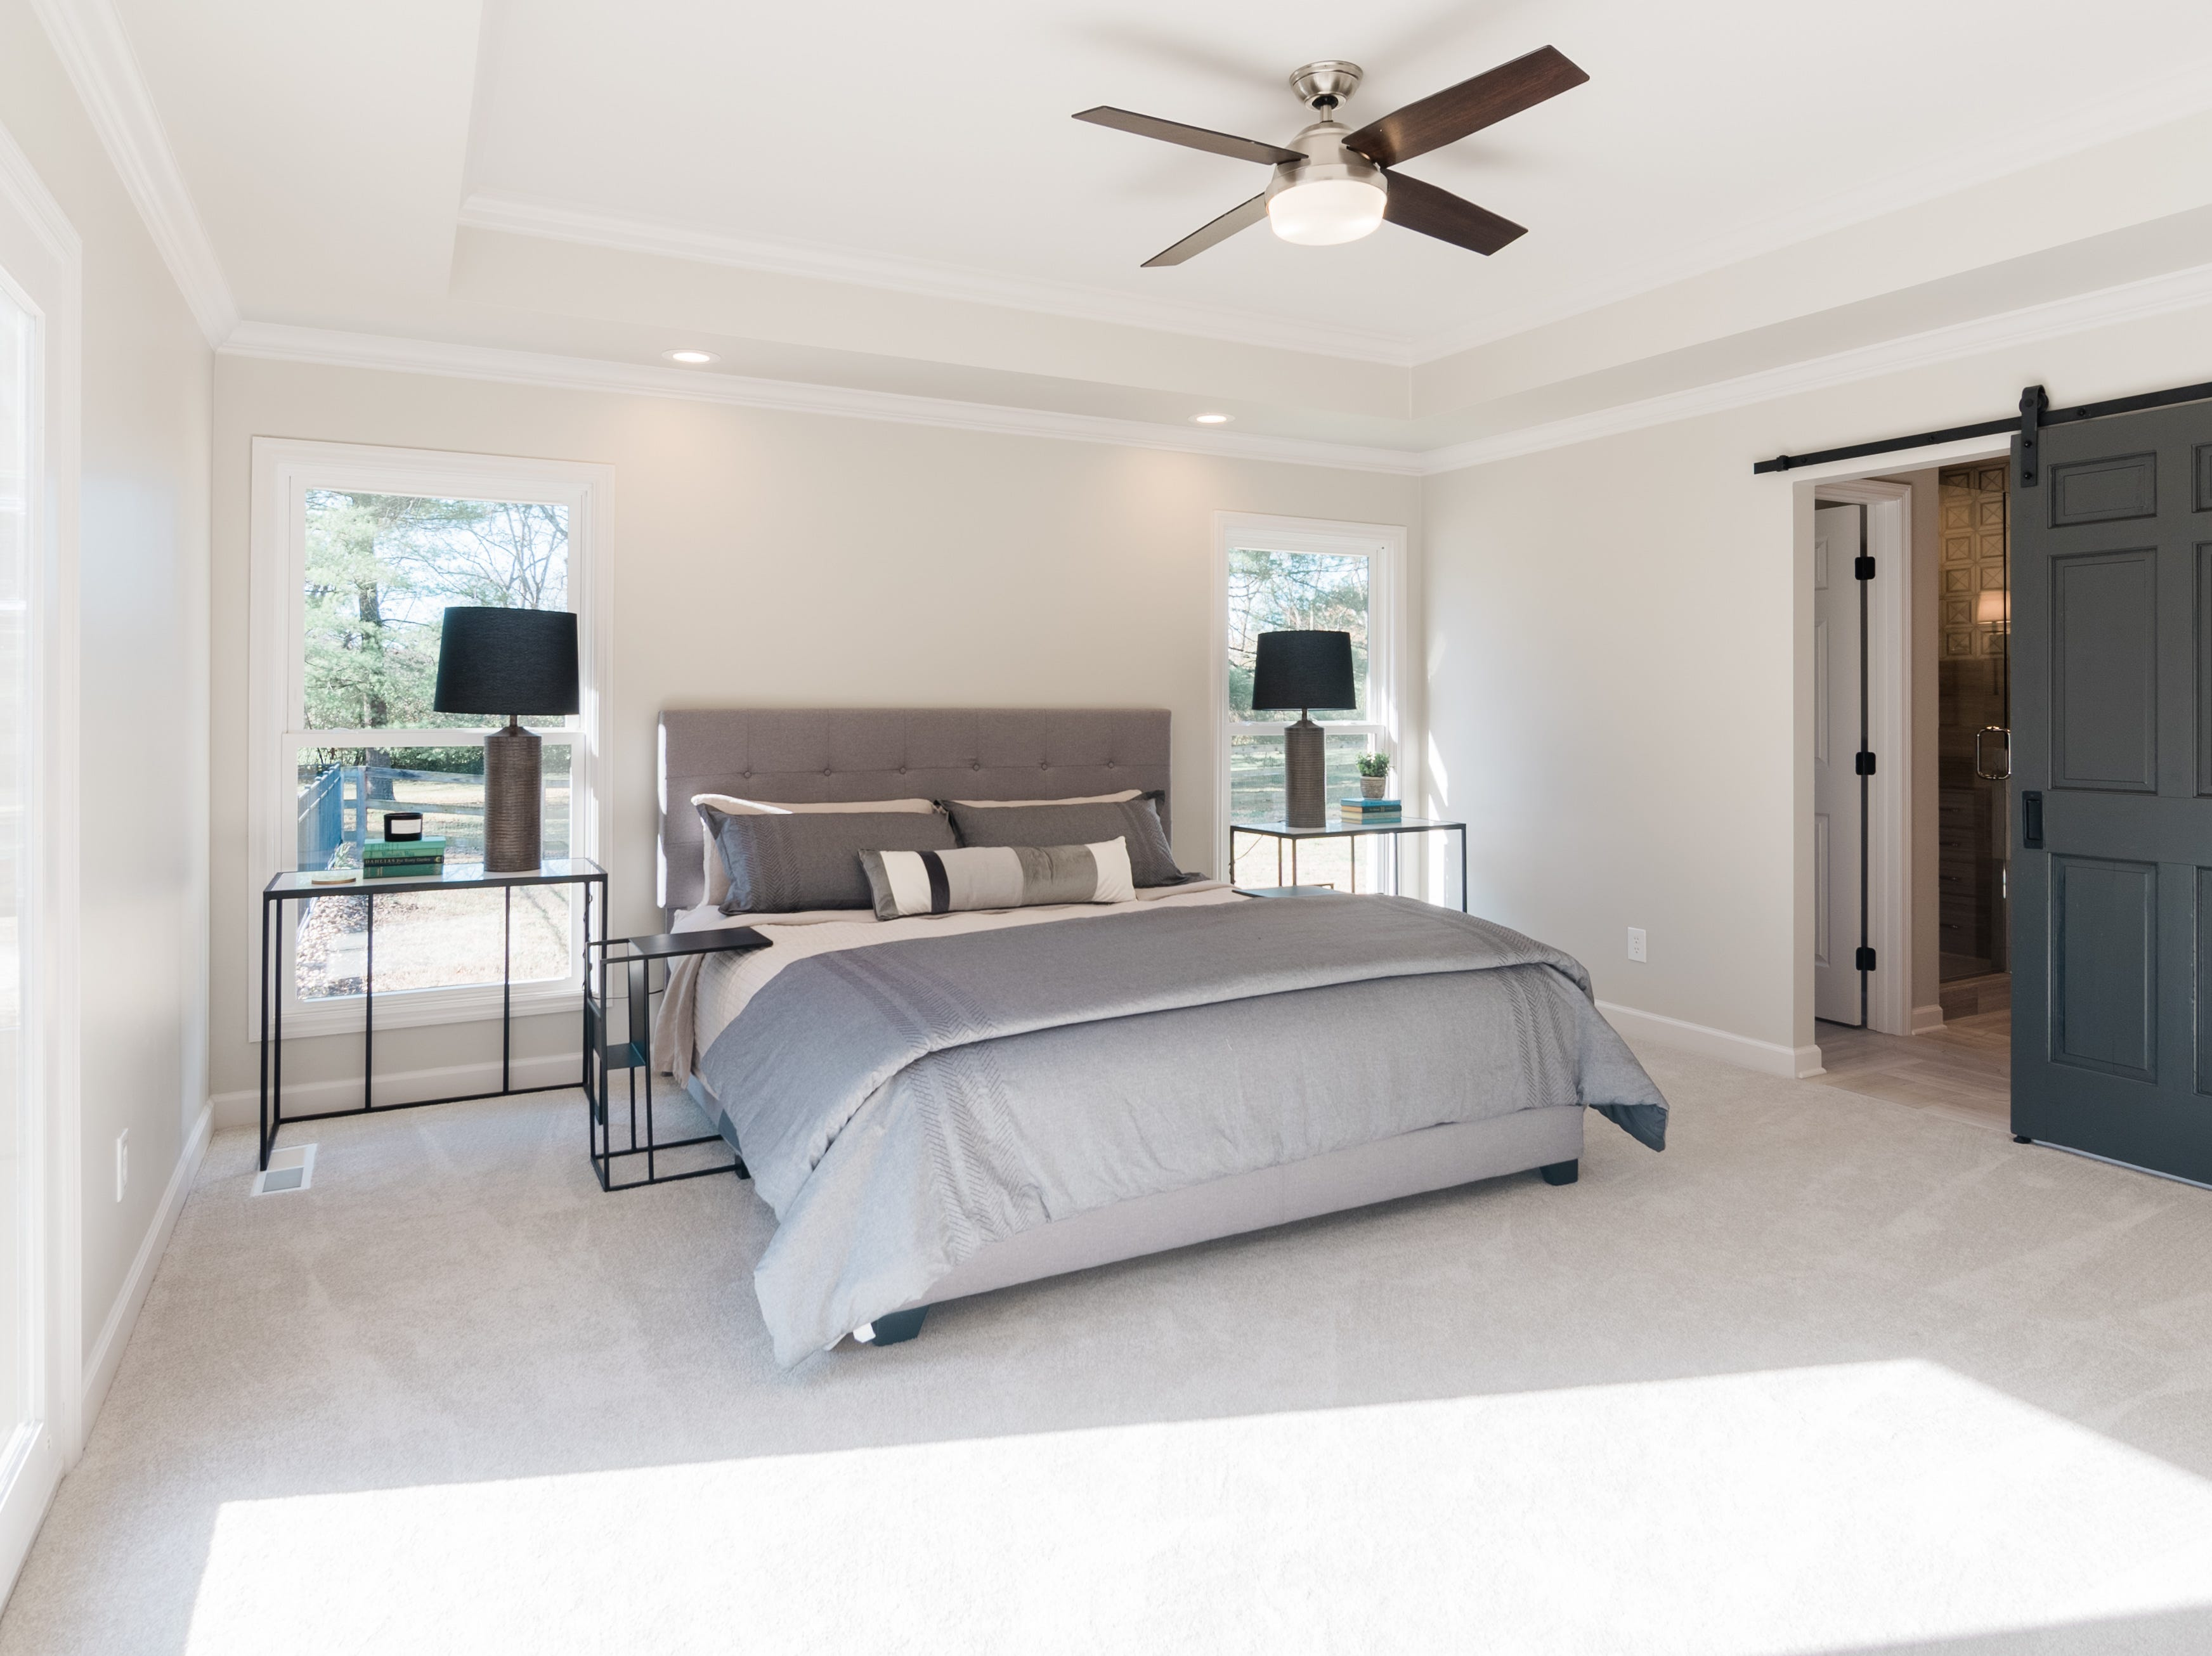 AFTER: The remodeled master bedroom at 405 Oakvale is filled with light.